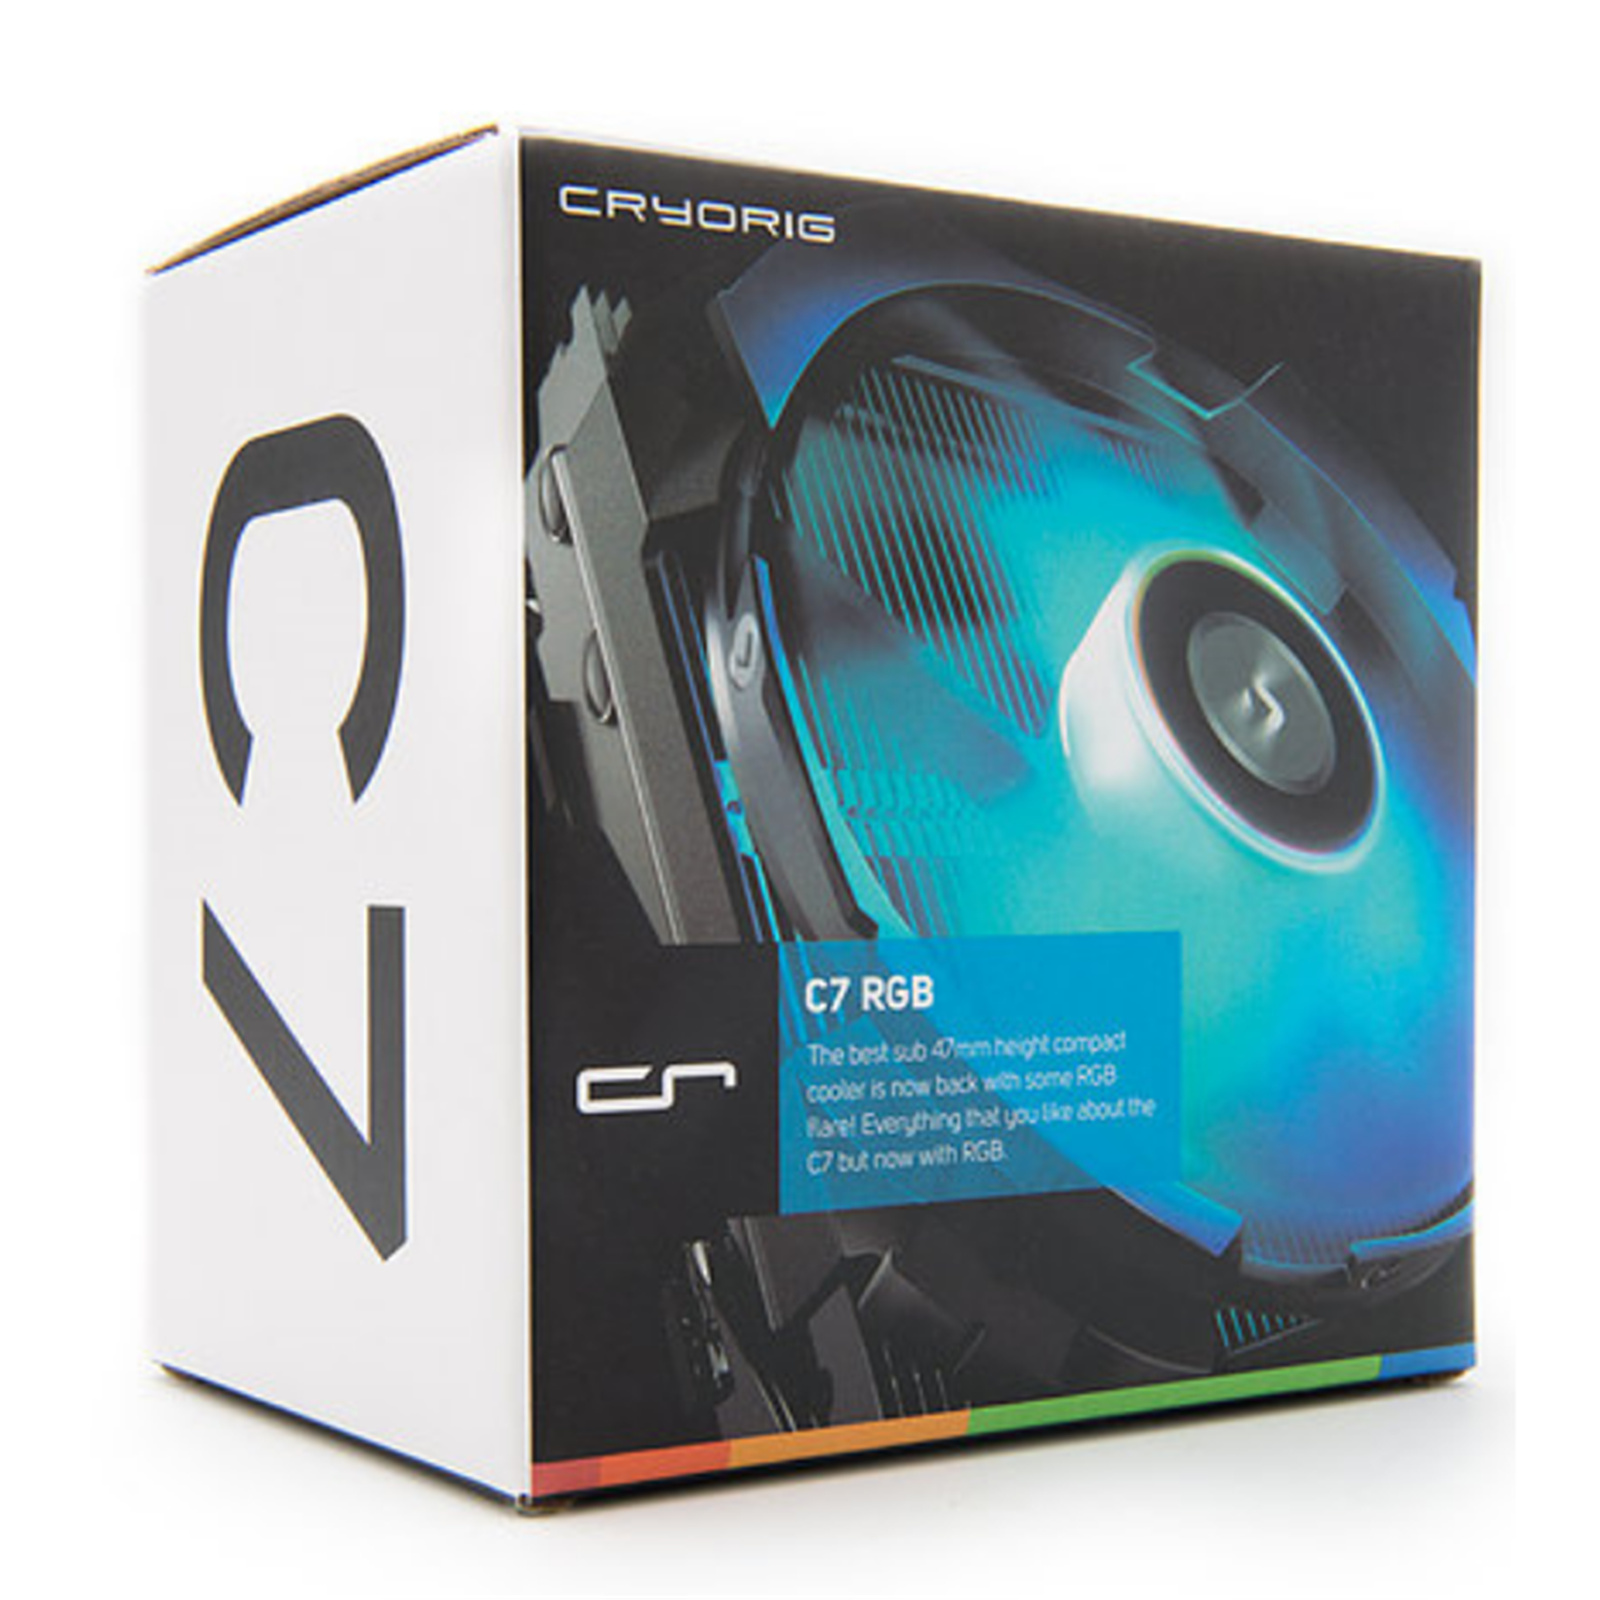 Buy the CRYORIG C7 RGB Top Flow Low Profile CPU Cooler ,92mm